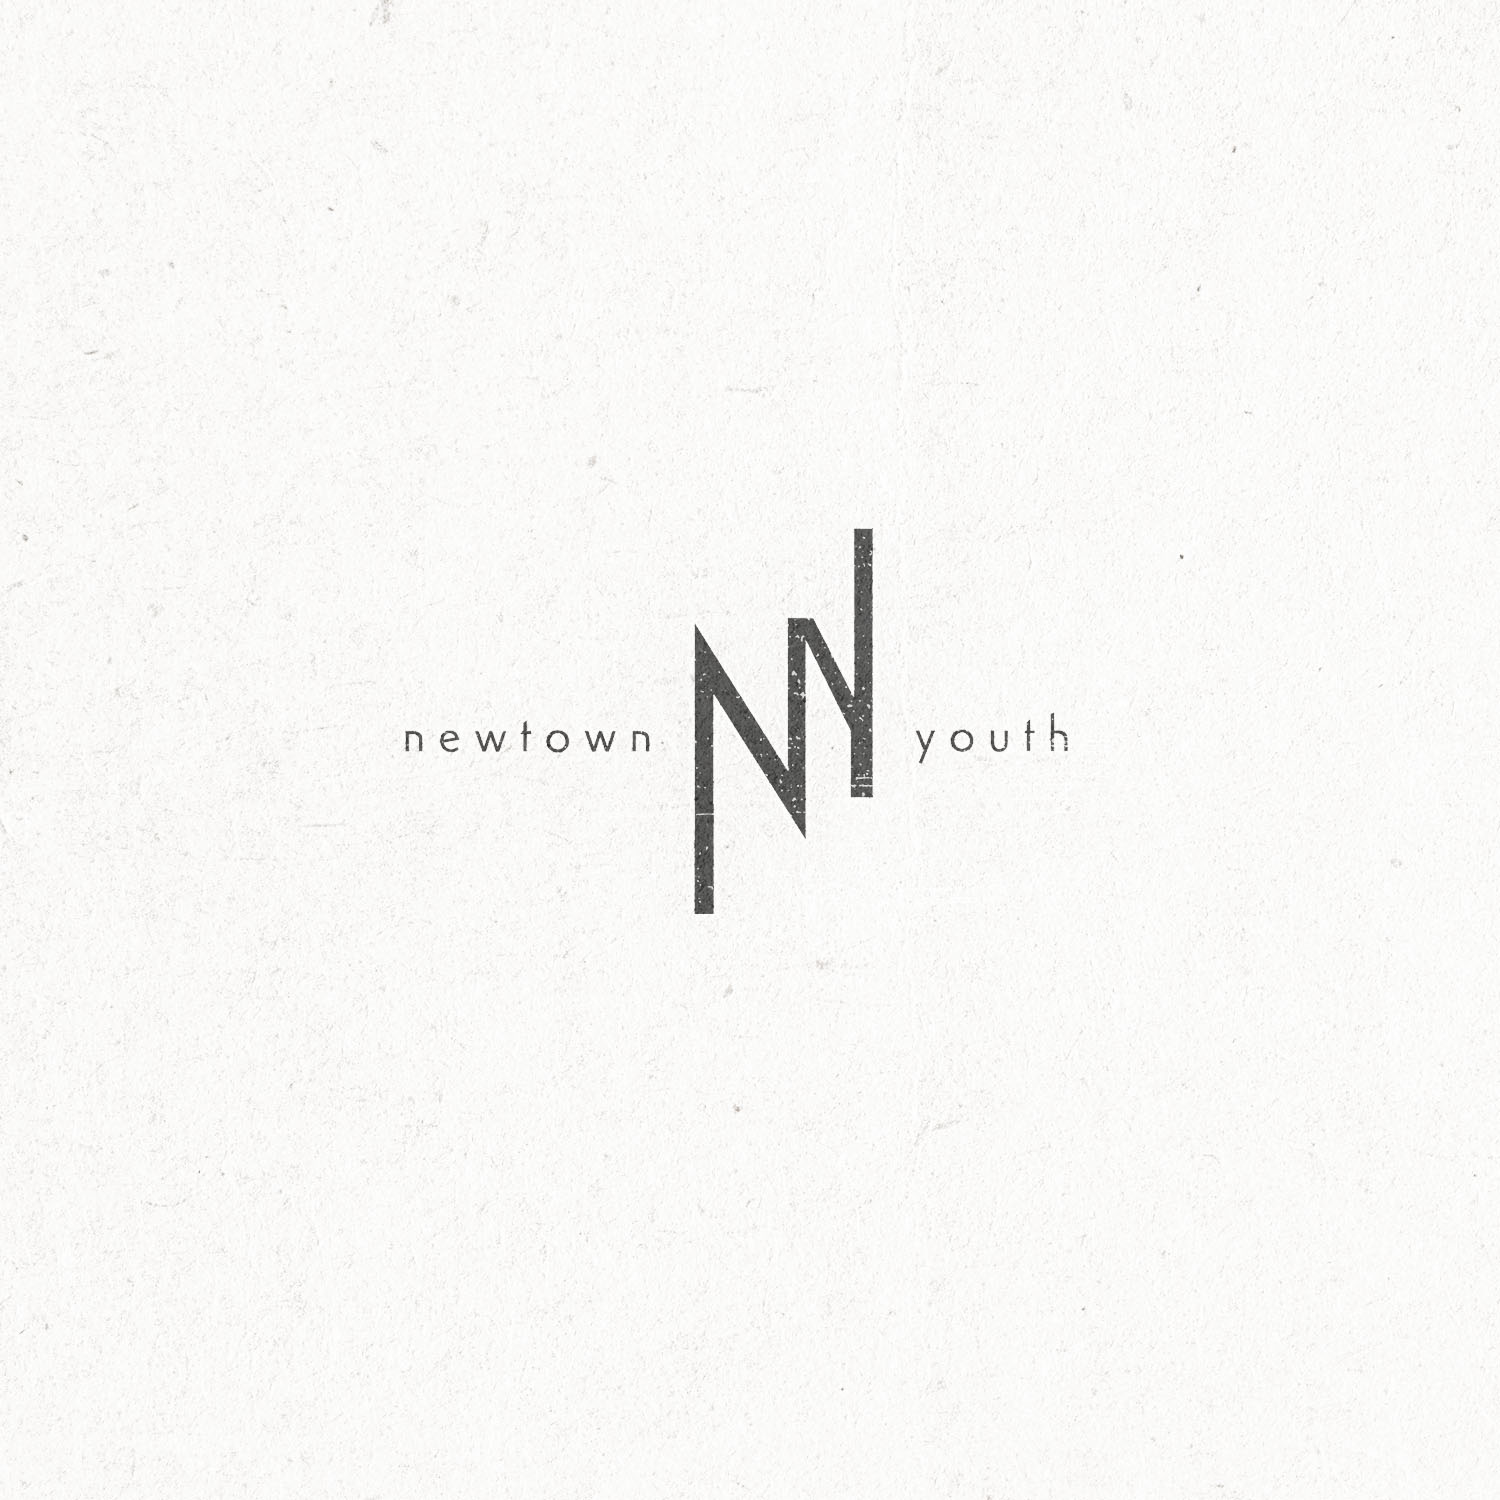 NewtownLogo_showcase_5.jpg